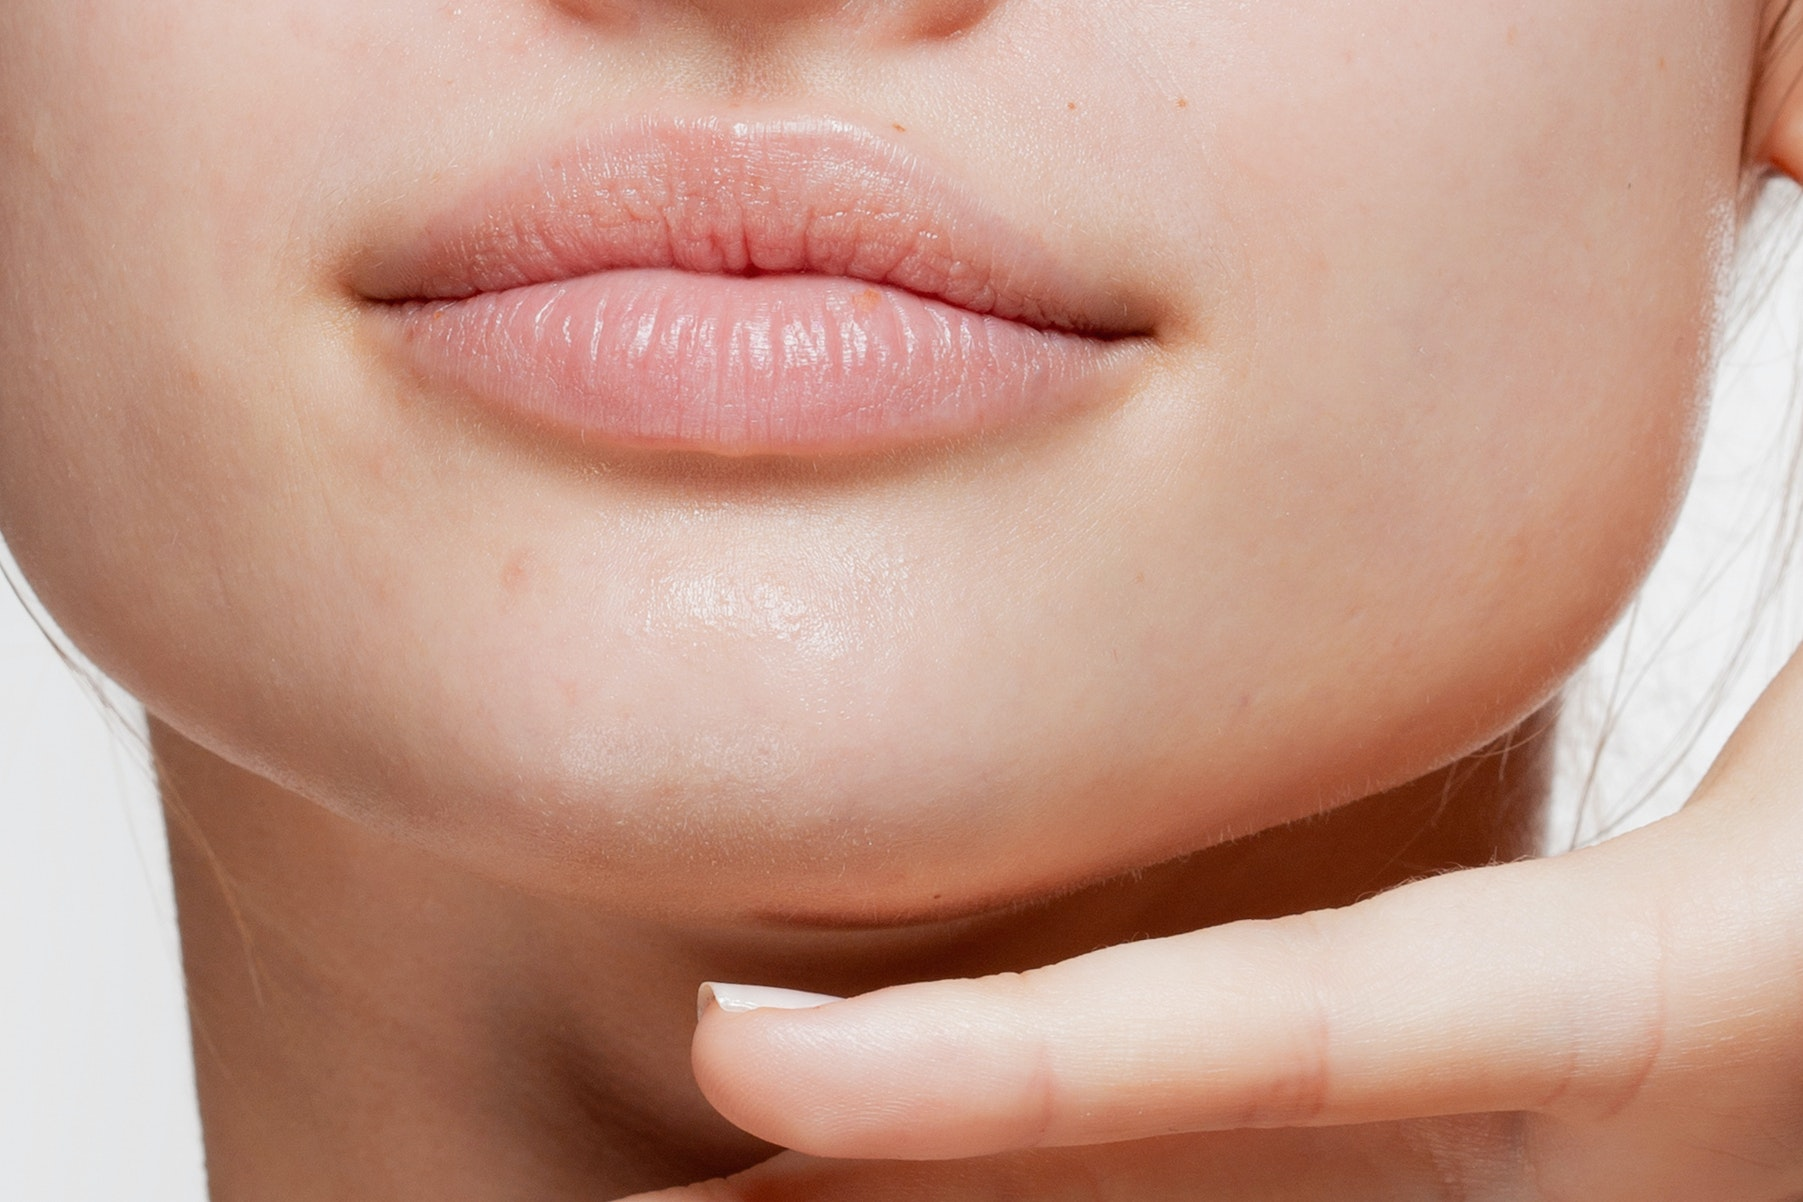 5 Dermatologist-Recommended Lasers That Can Help Smooth Out Old Acne Scars